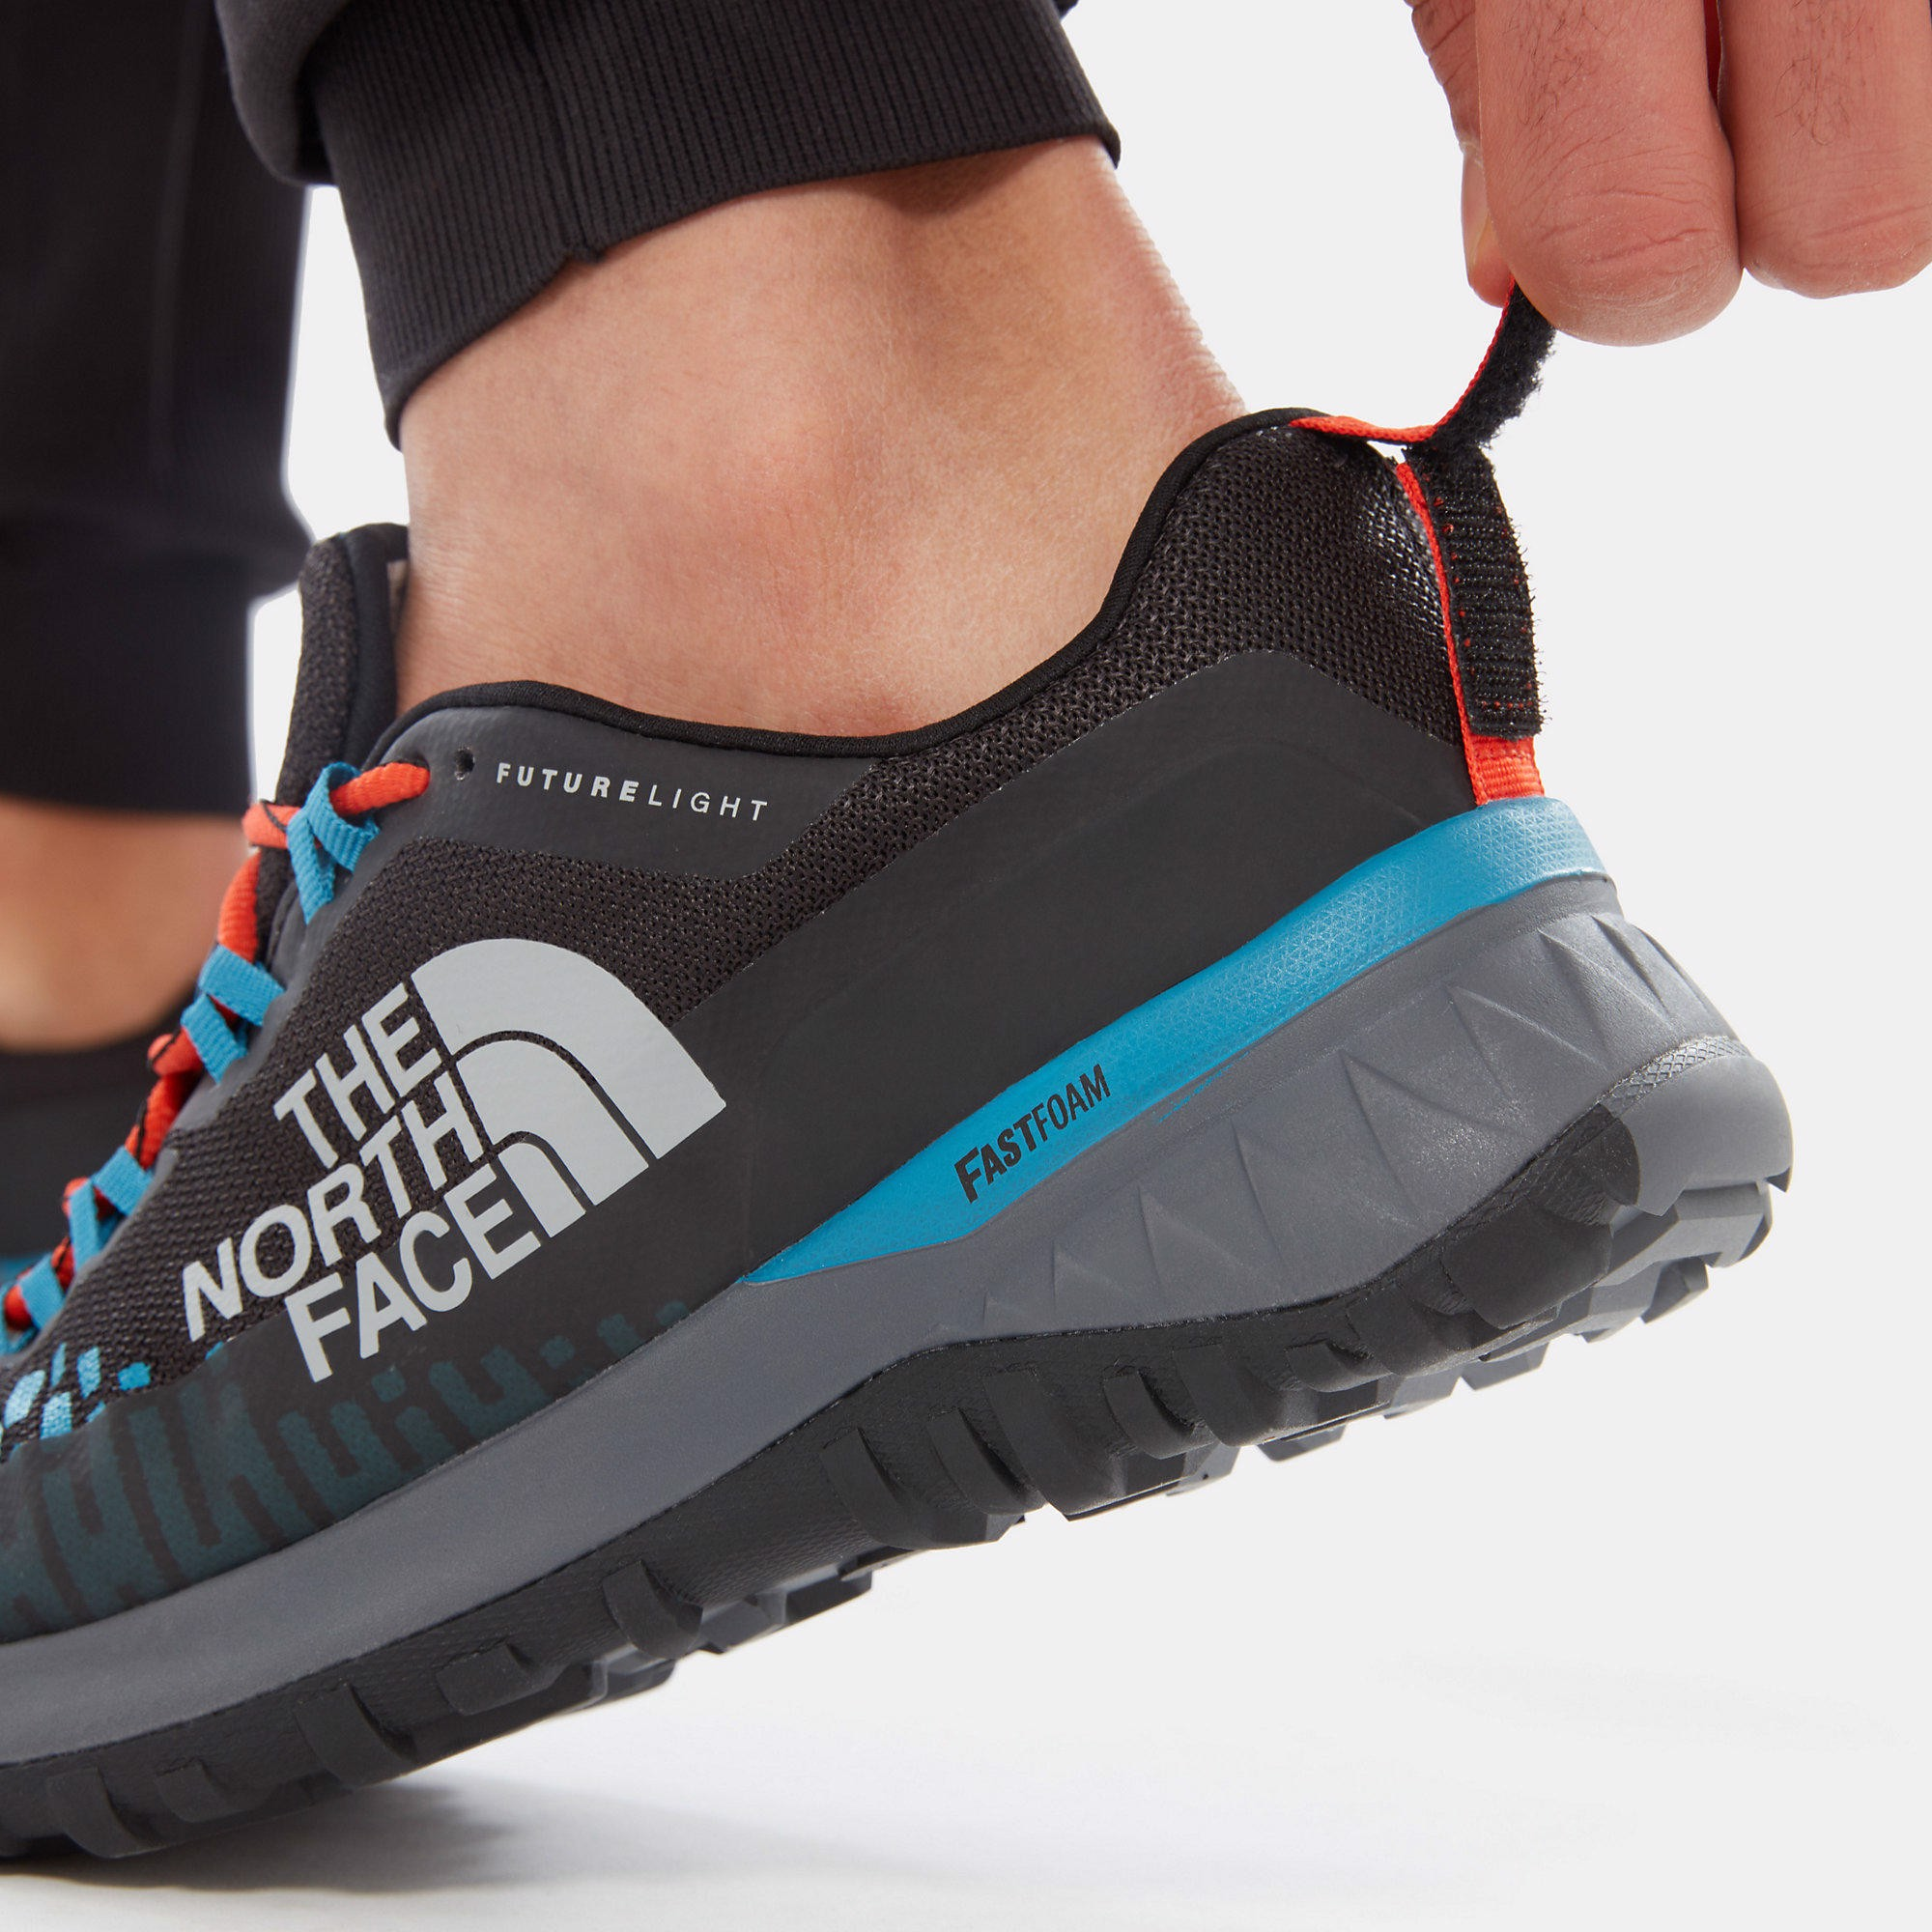 The North Face - Giày thể thao Nam Footwear Men Ultra Traction Futurelight NF0A4